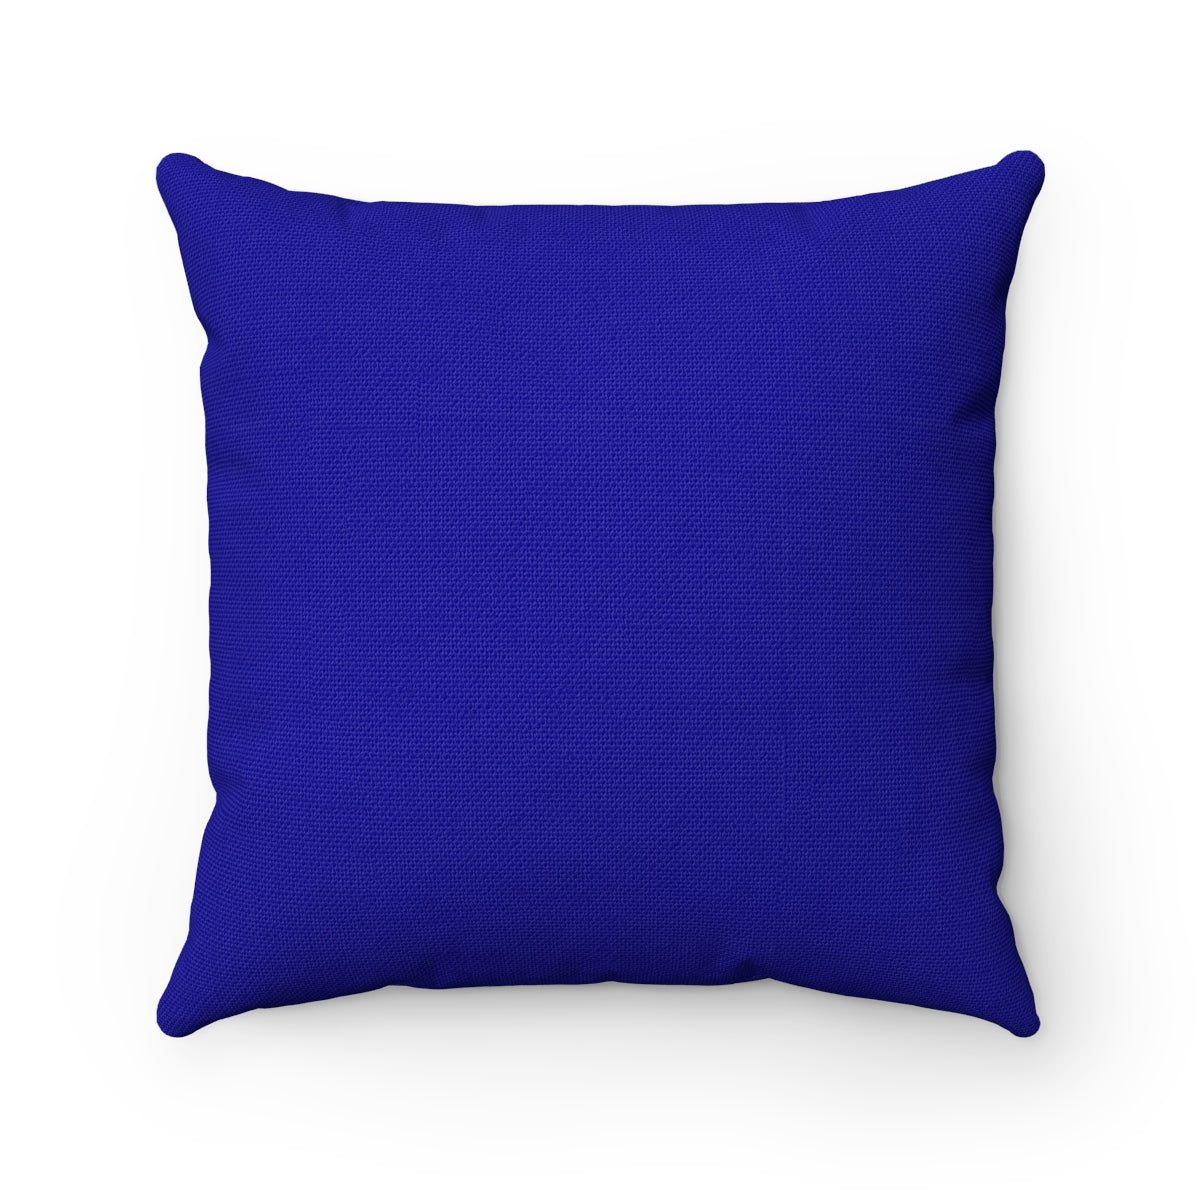 Tent Life Pillow: Blue